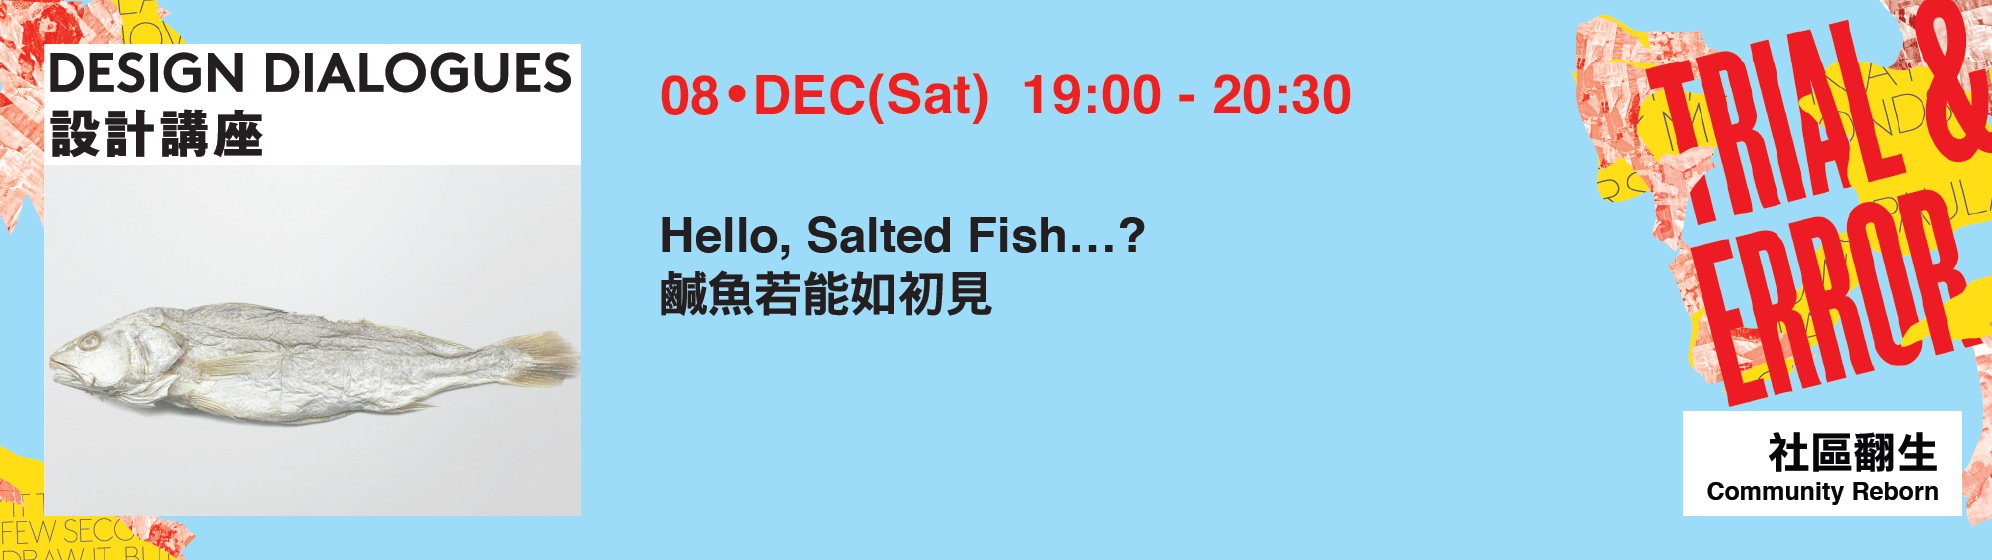 鹹魚若能如初見 | Hello, Salted Fish…?